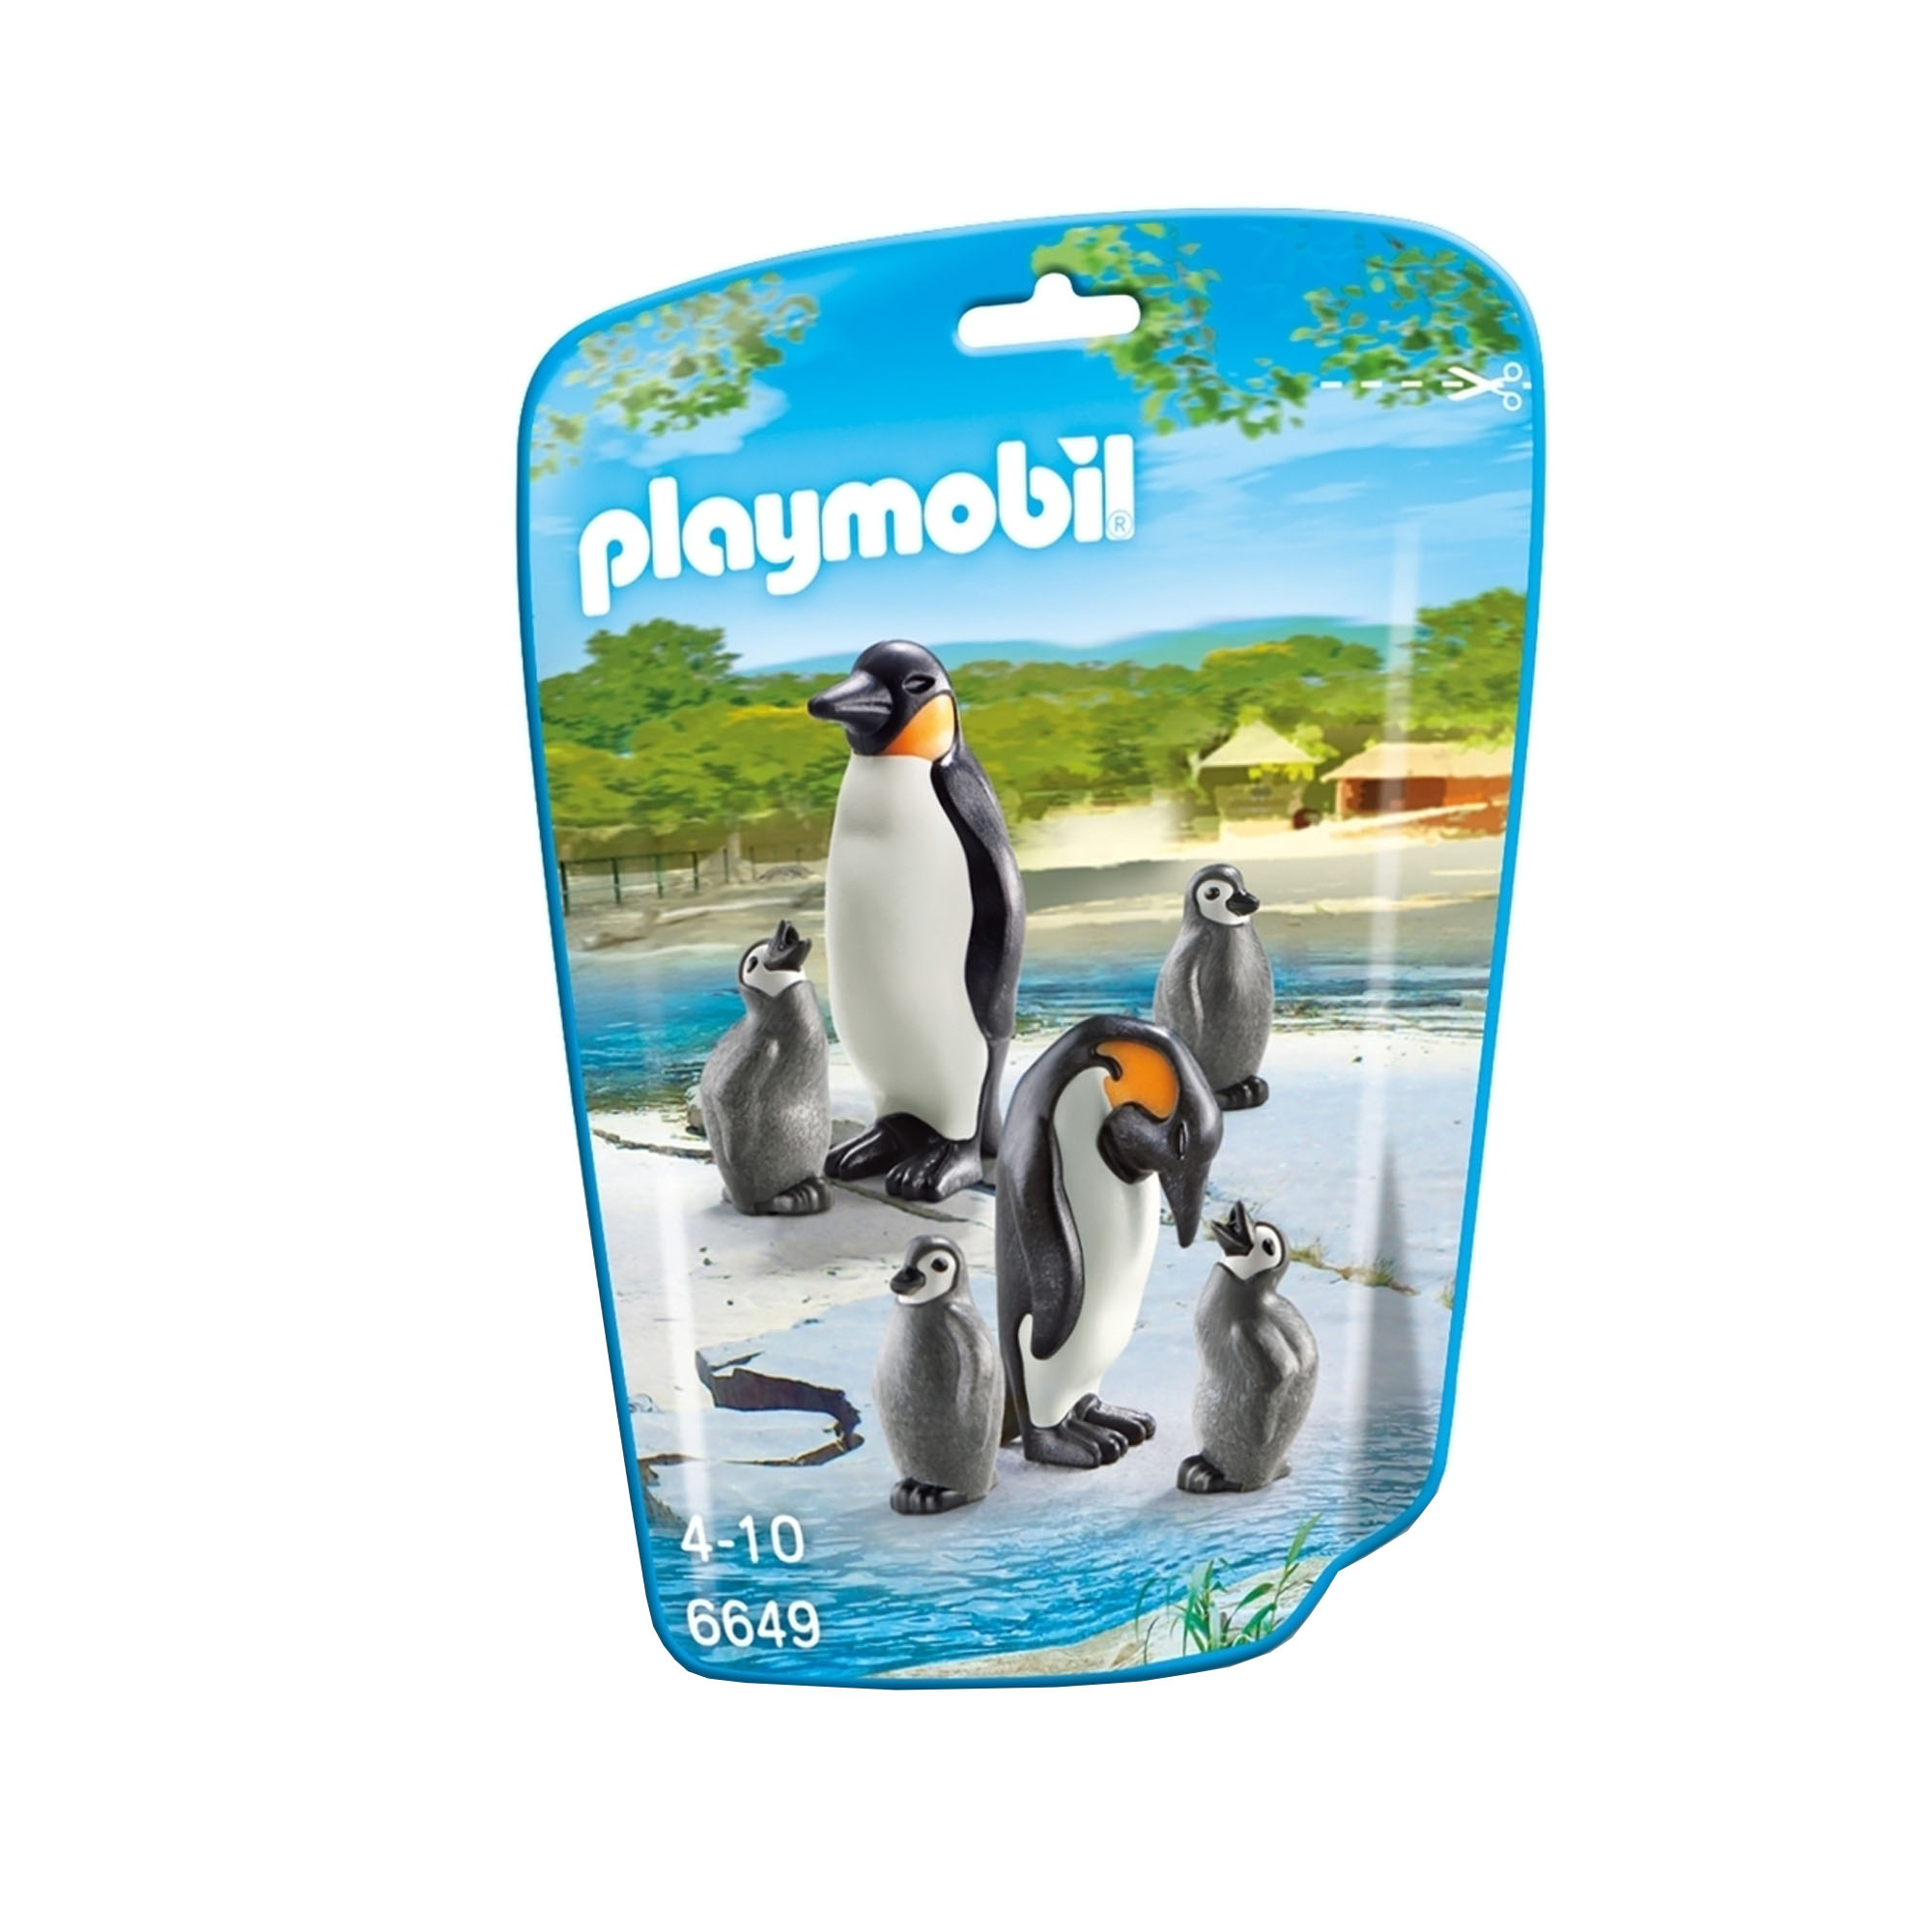 Playmobil Penguin figures